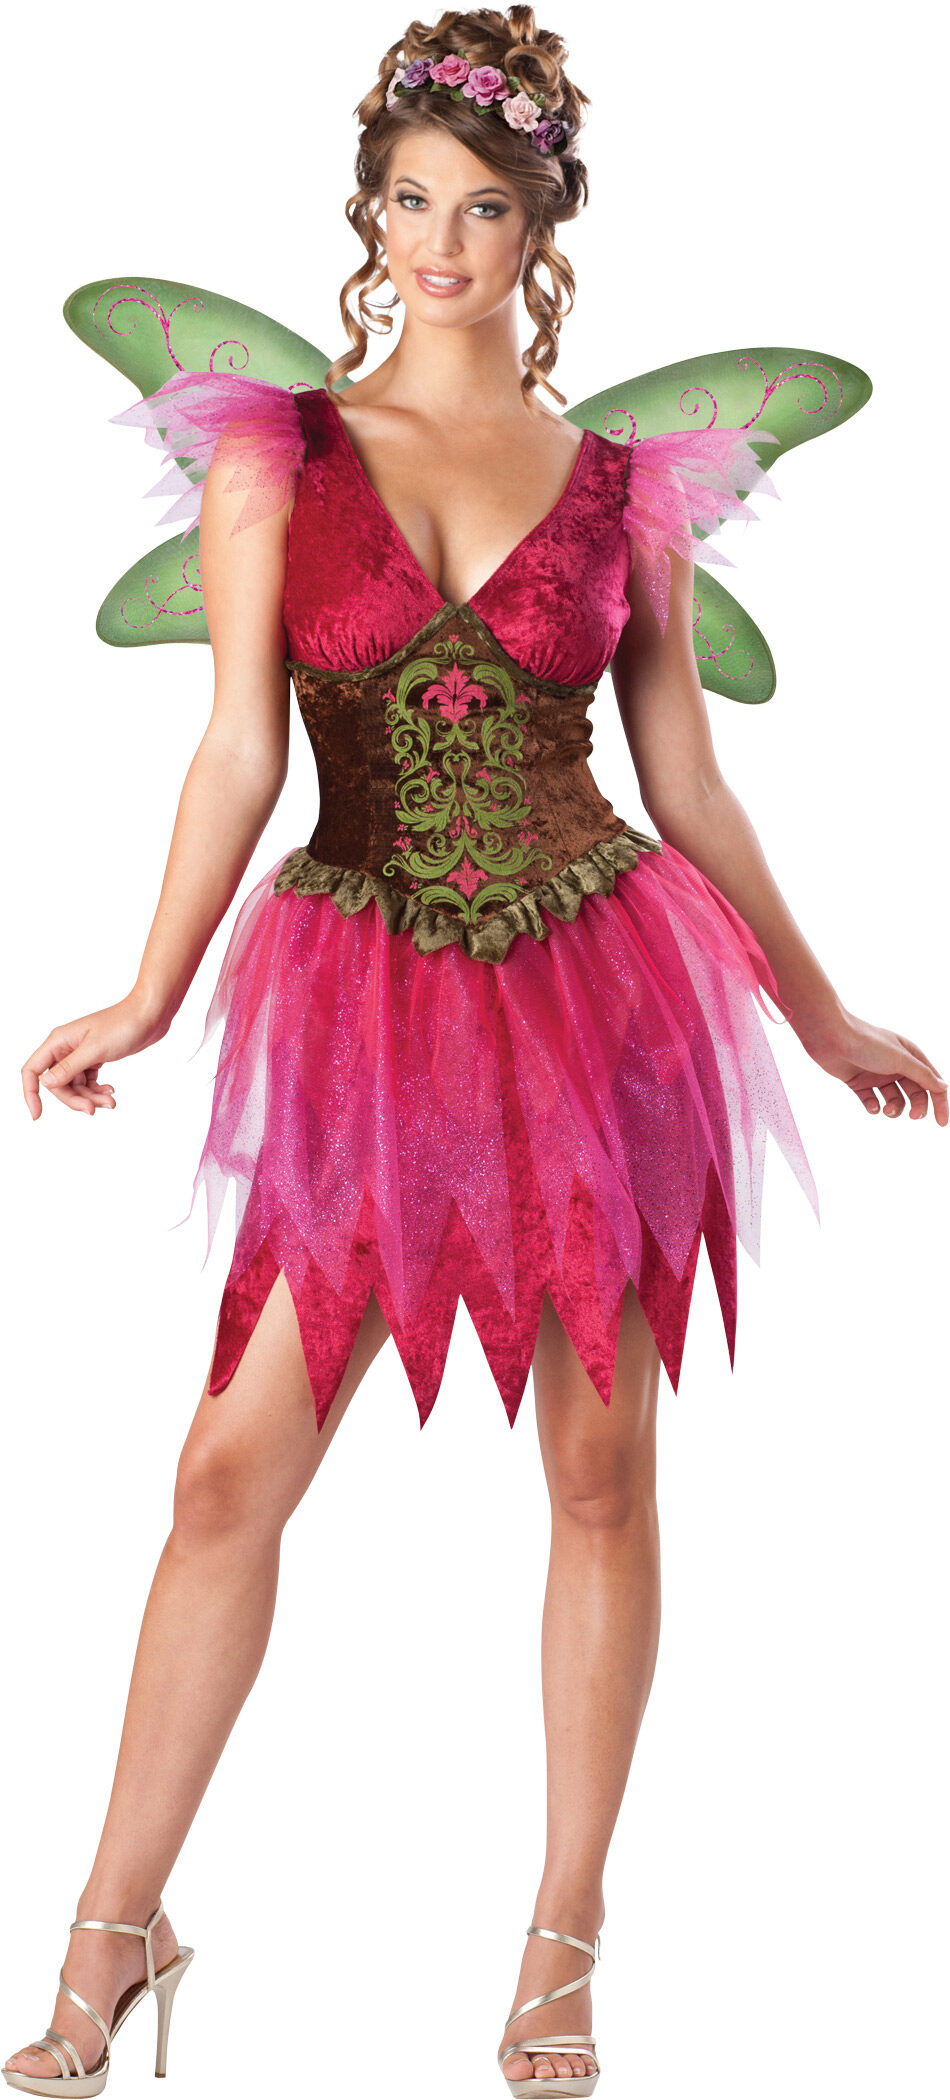 Fairy sexy costumes pictures sexy toons